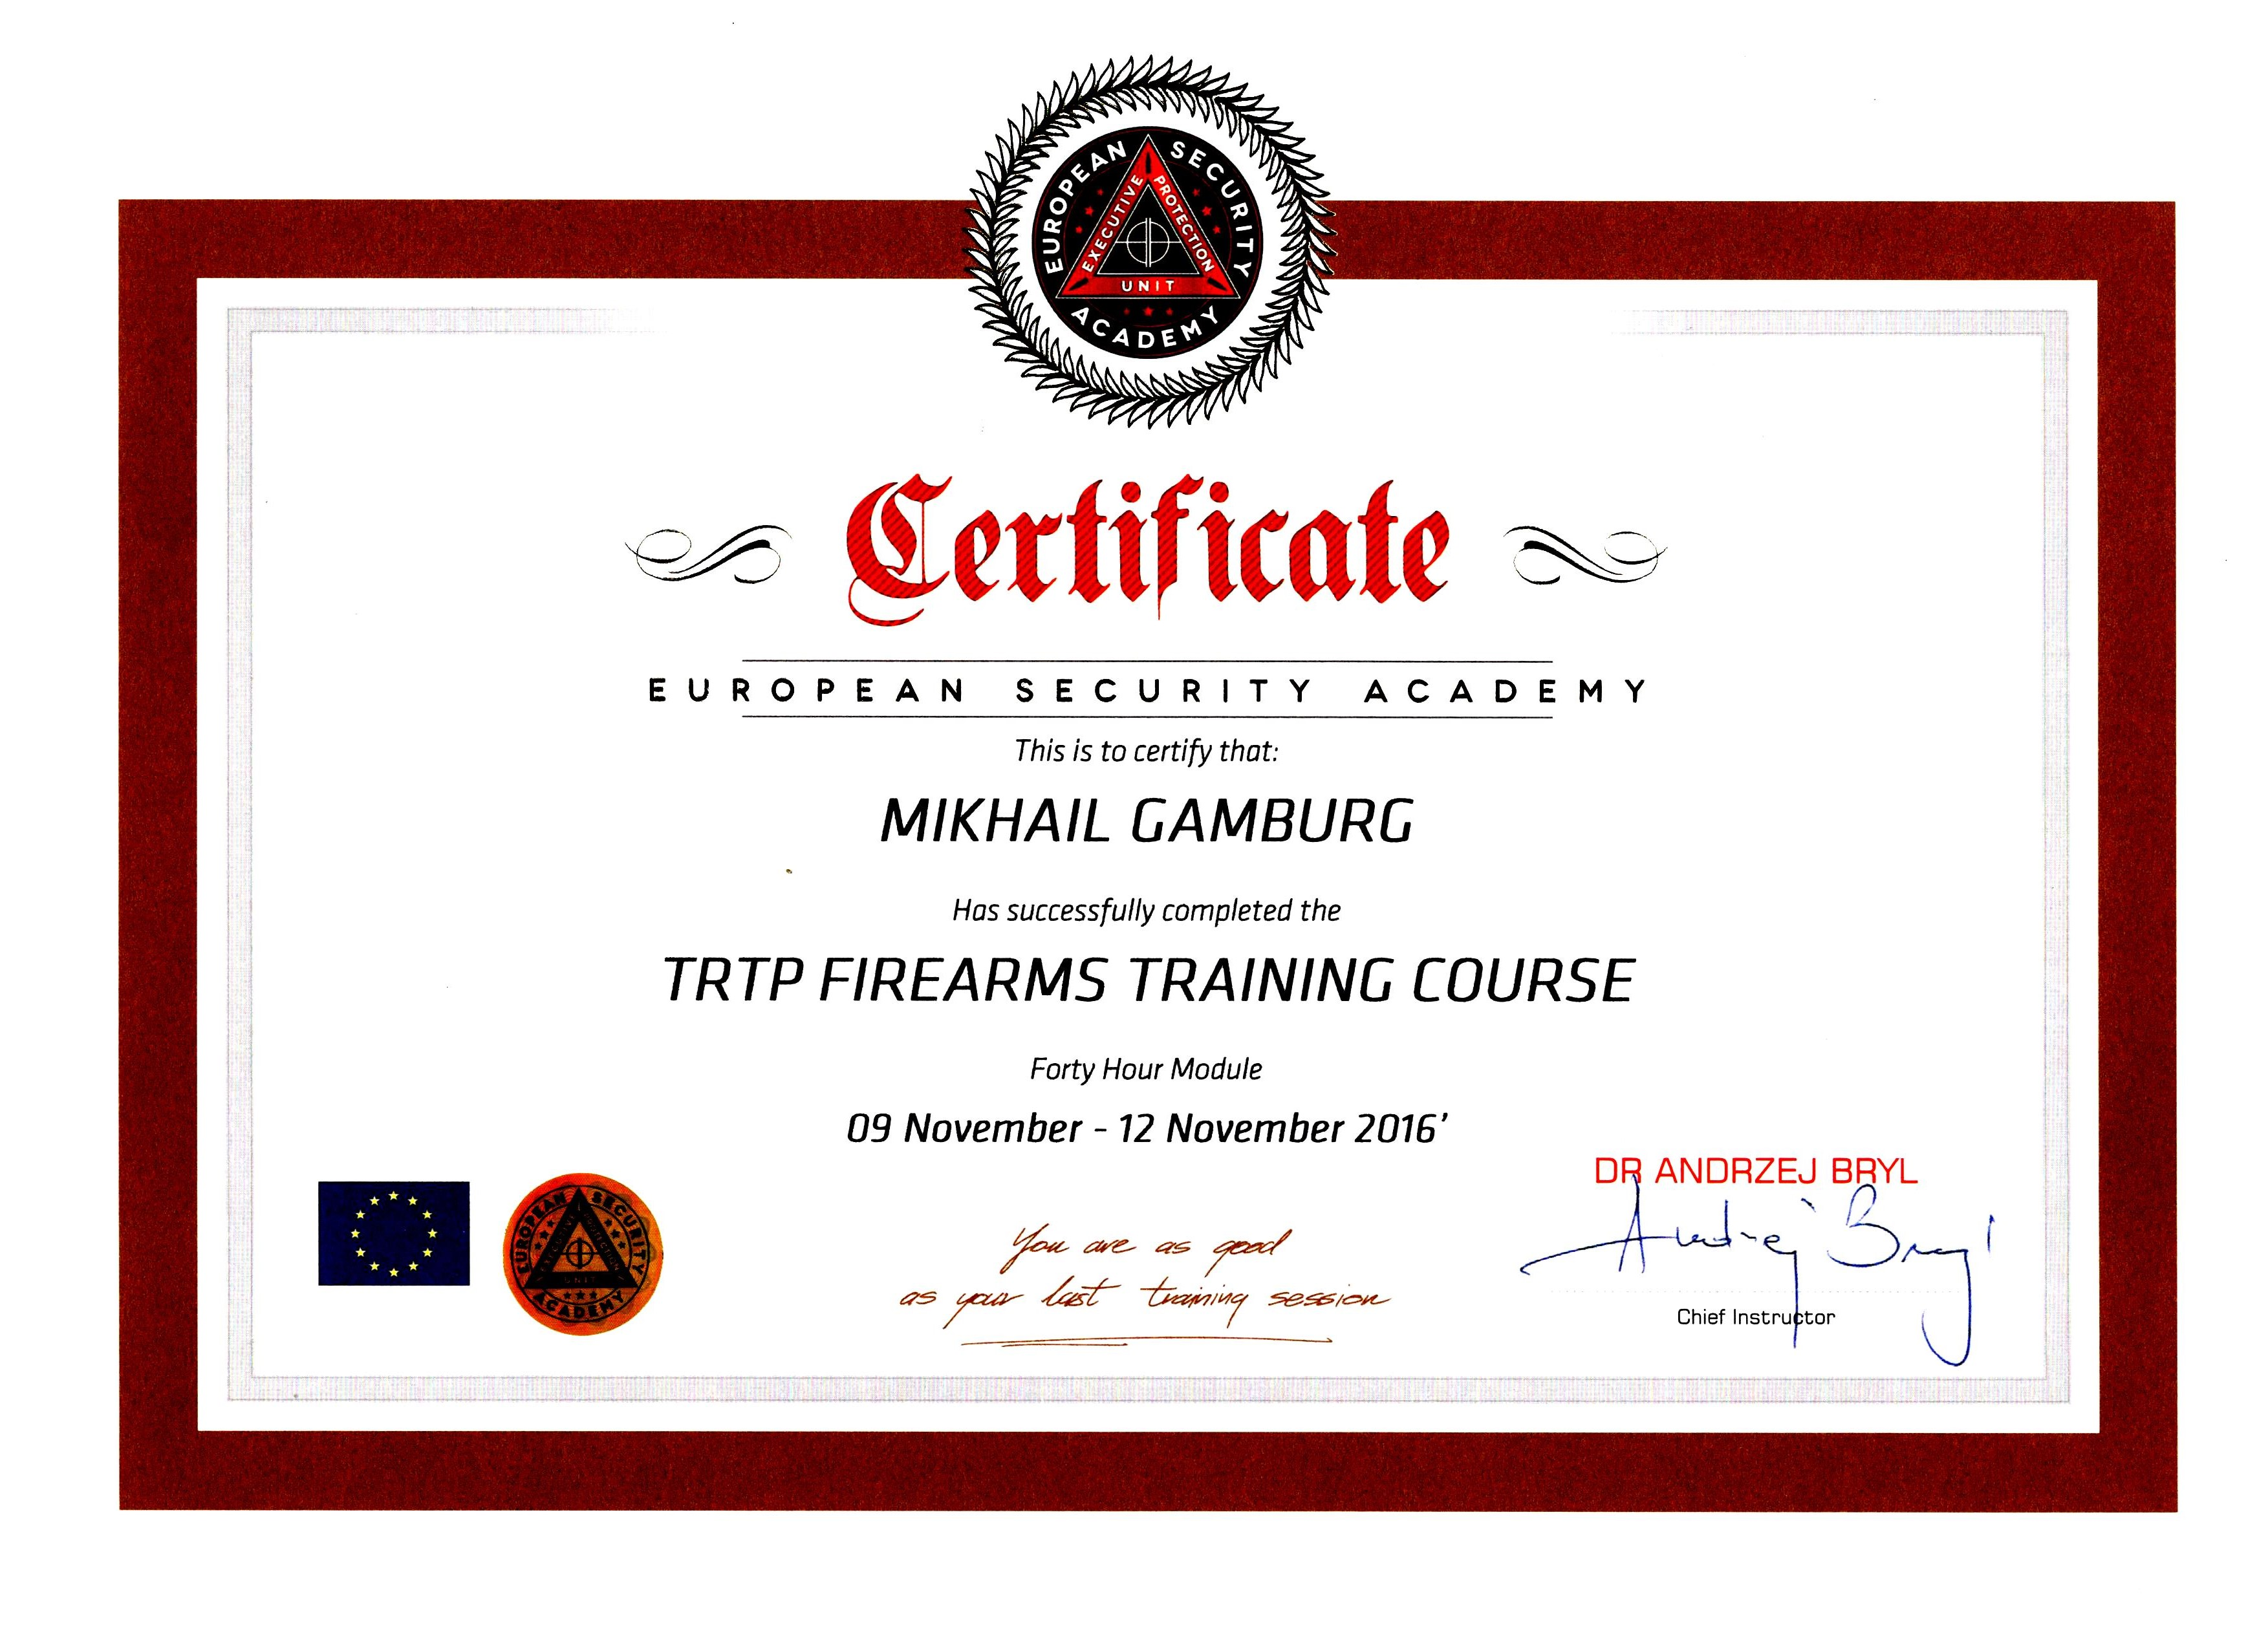 Certificate European Security Academy Mikhail Gamburg 09 November - 012 November 2016